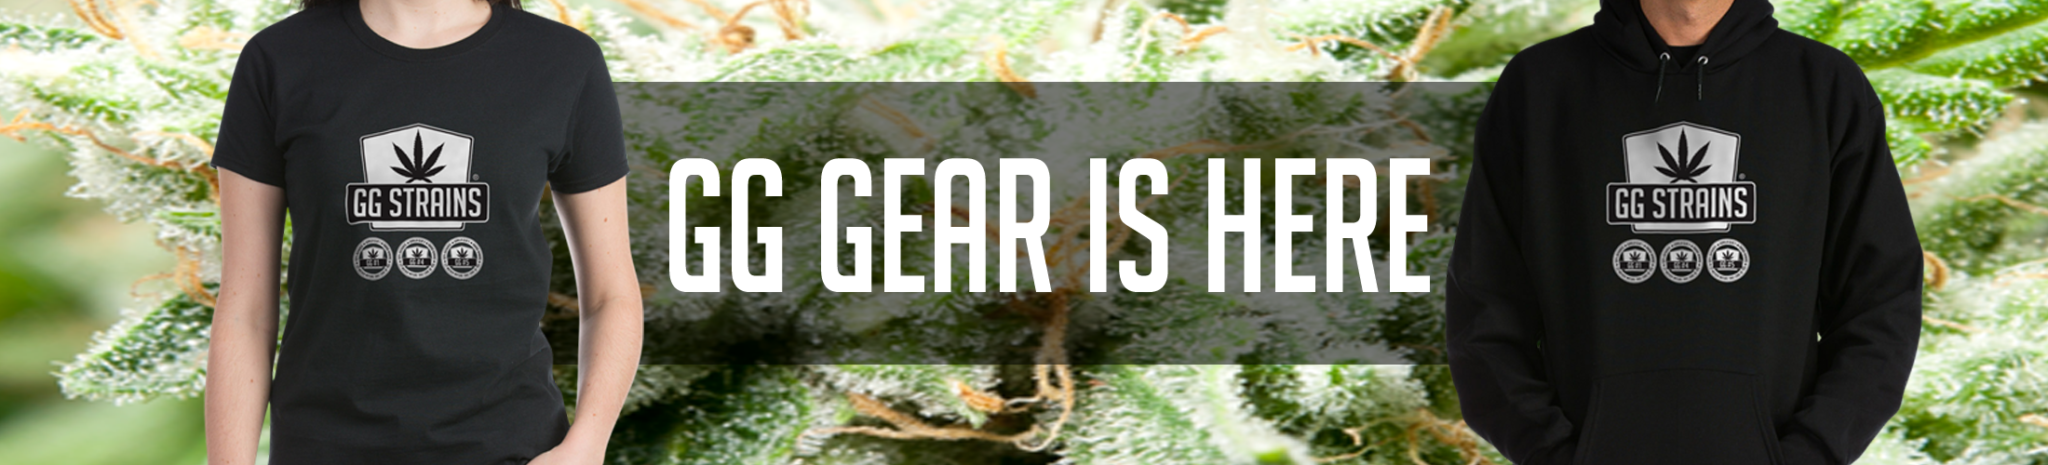 GG-Gear-Here—Gorilla-Glue-Strains-Gear